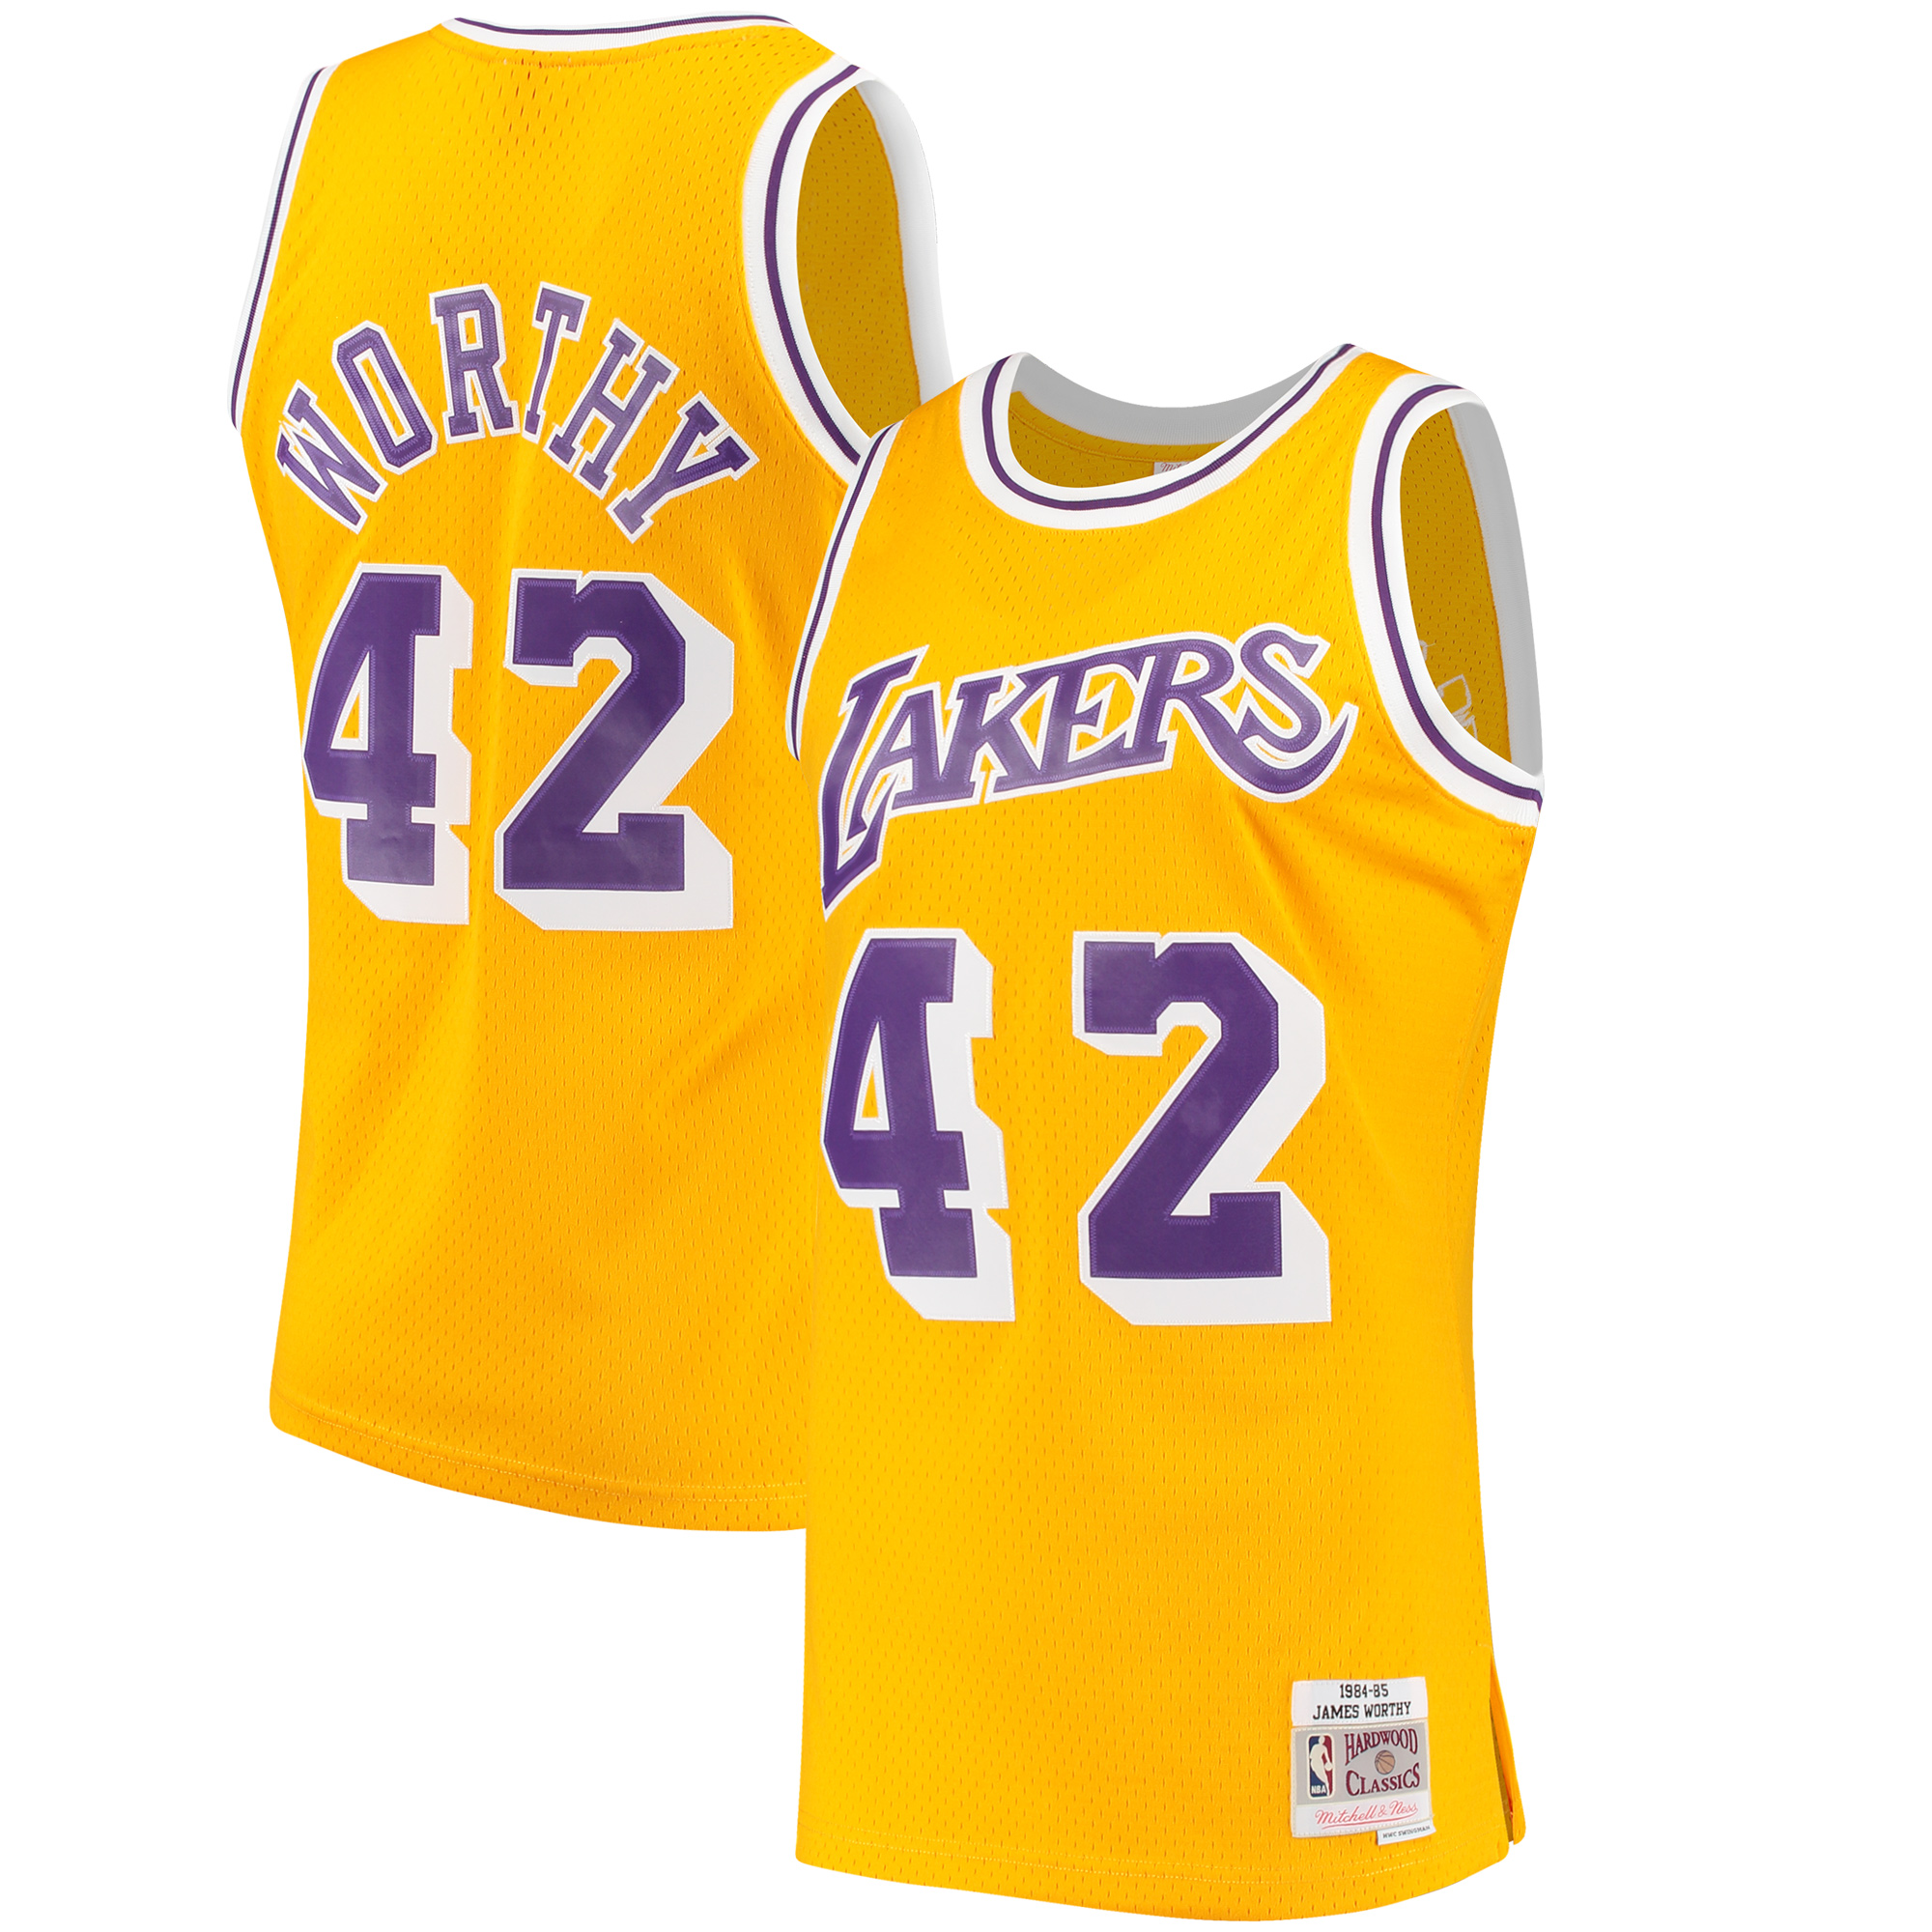 James Worthy Los Angeles Lakers Mitchell & Ness Hardwood Classics Swingman Jersey - Gold - S